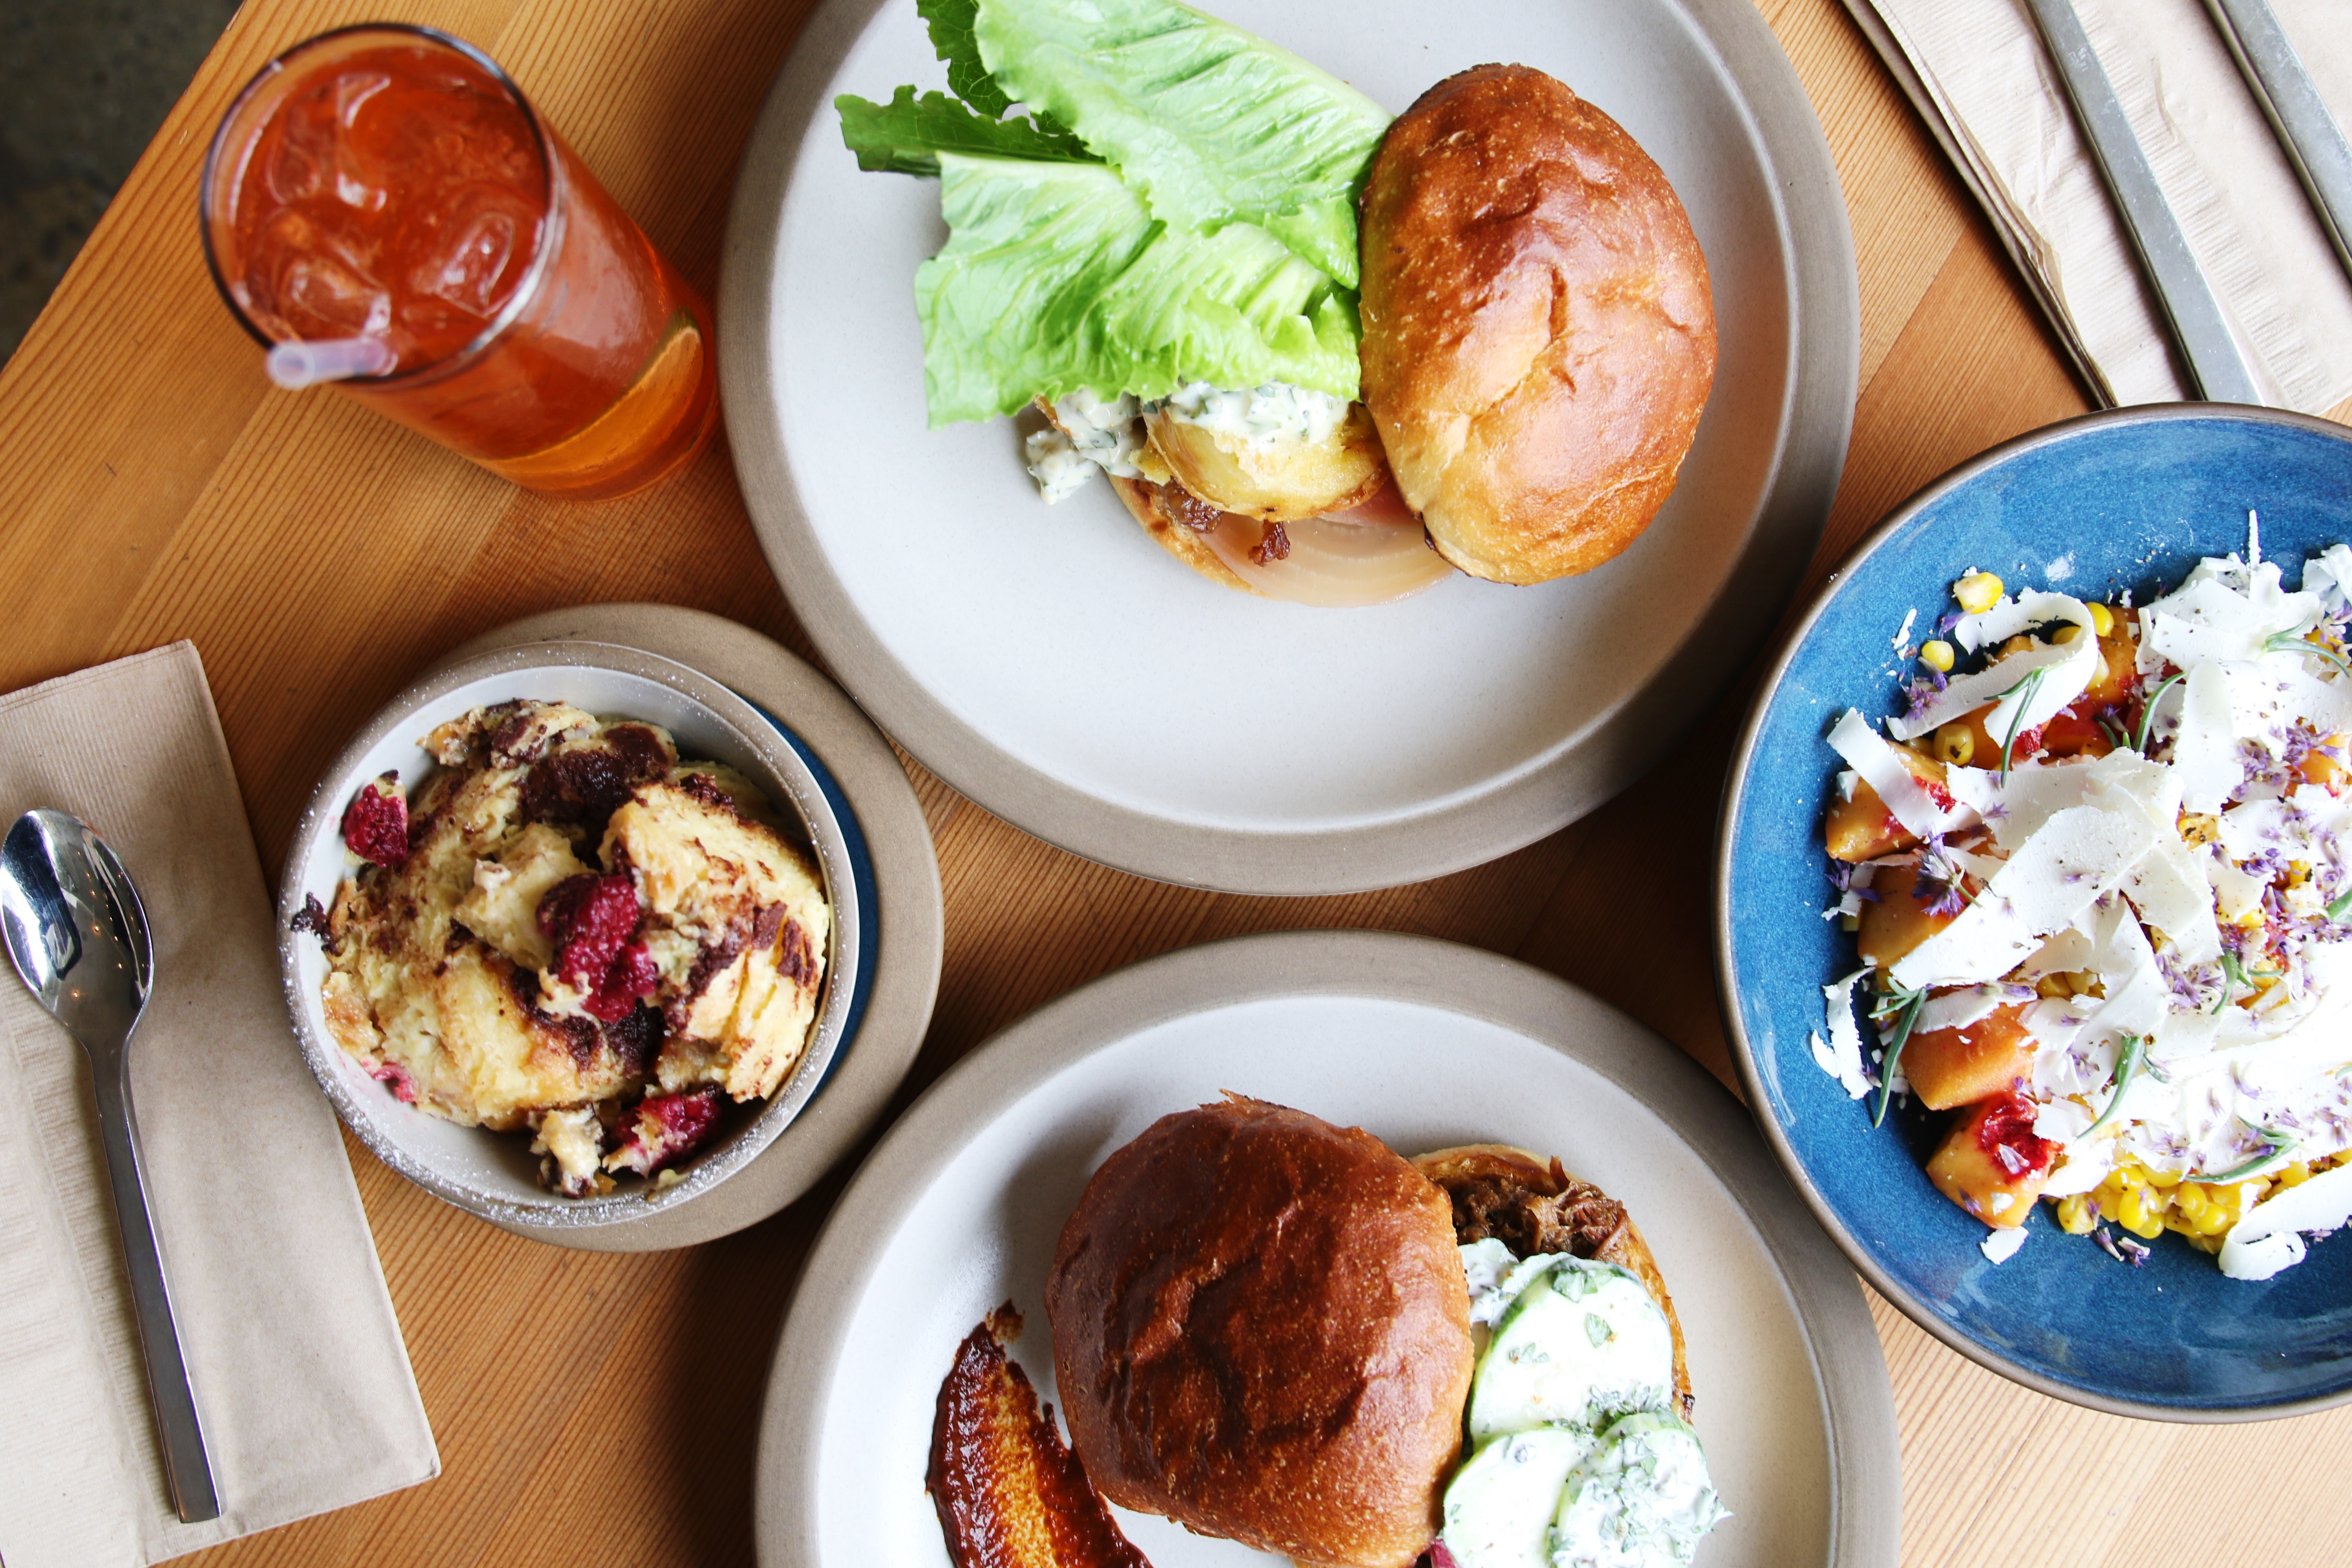 As You May Now Tartine Manufactory Is One Of My Favorite Restaurants In San Francisco Whether Are Visiting Or A Bay Area Native